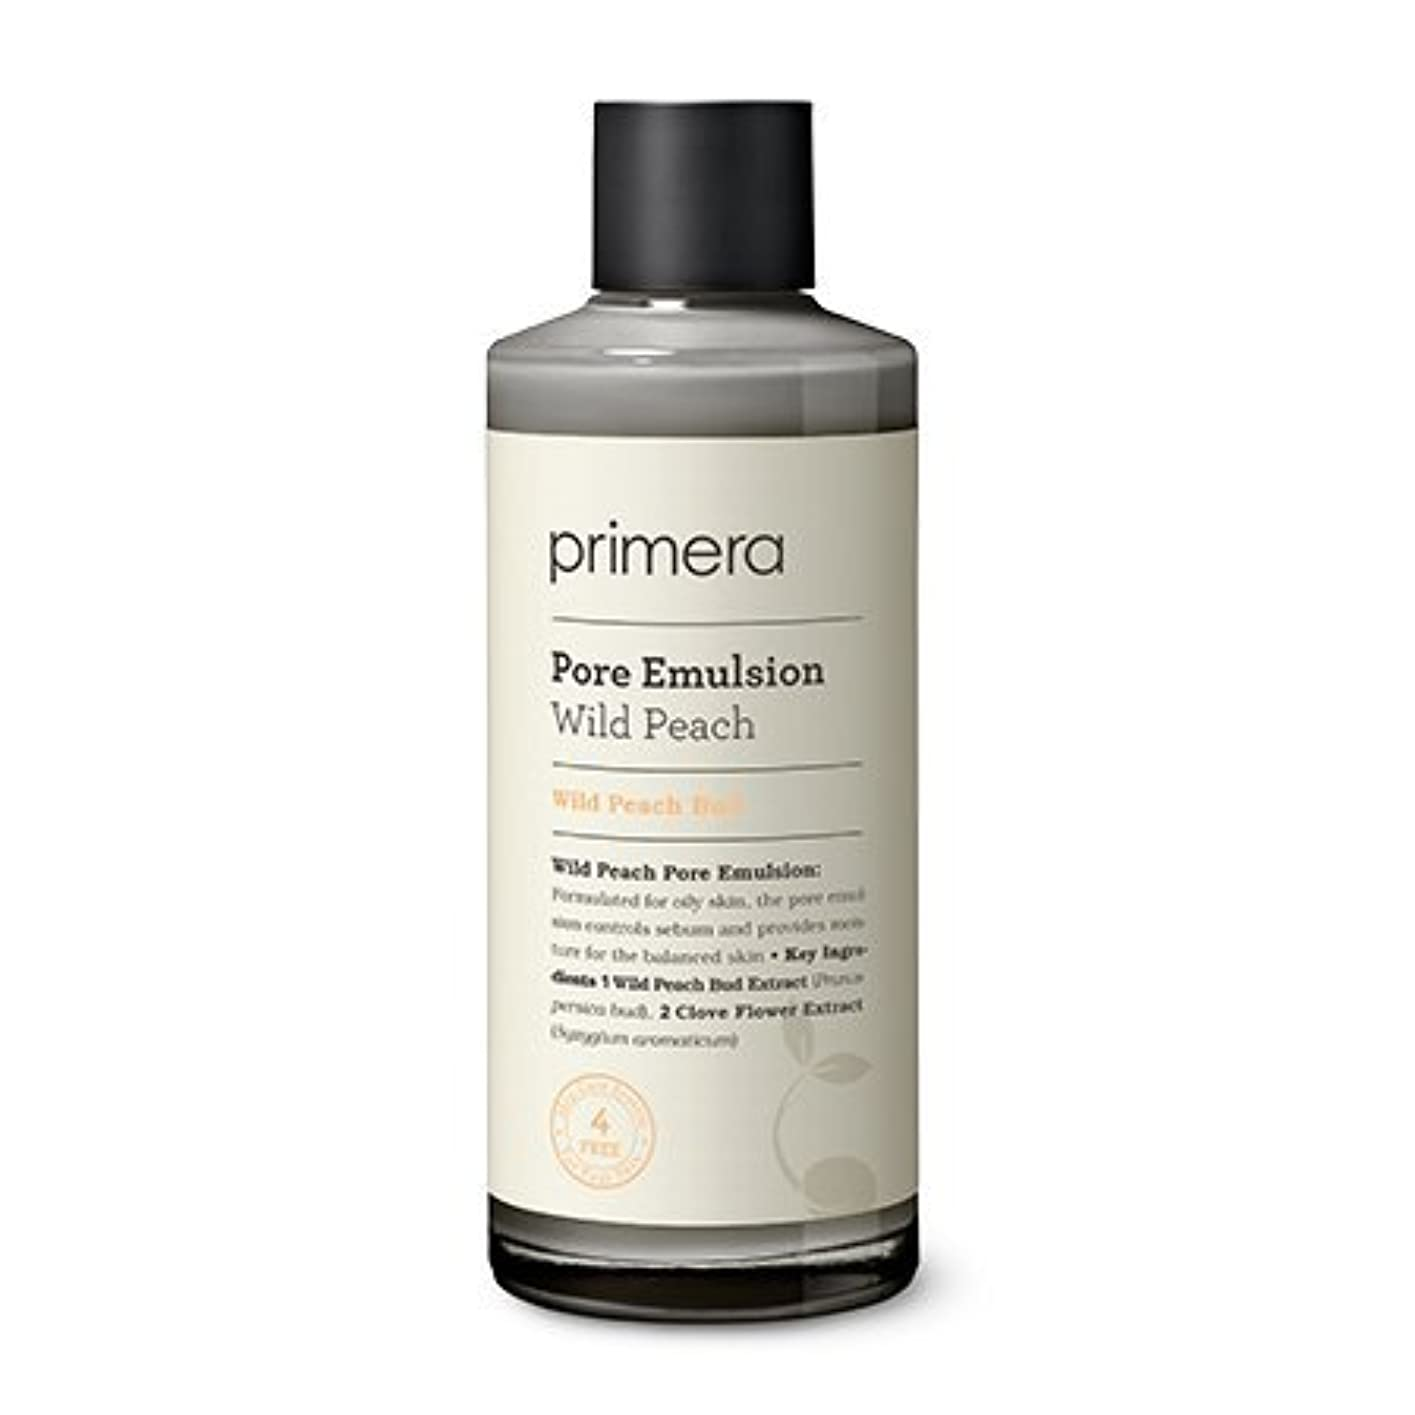 激怒過剰借りる【Primera】Wild Peach Pore Emulsion - 150ml (韓国直送品) (SHOPPINGINSTAGRAM)